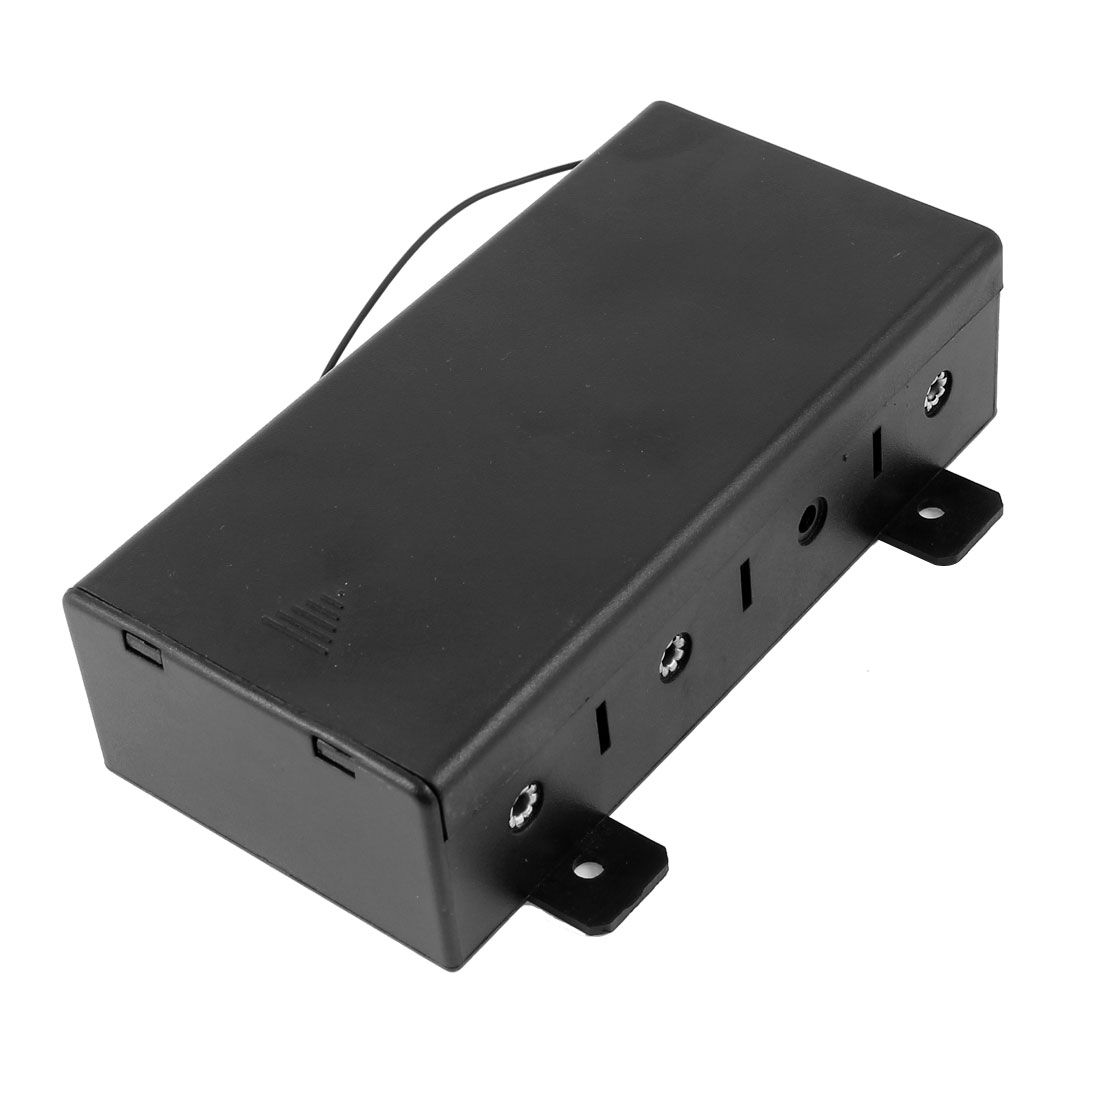 Spring Loaded Dual Wire Leads Black Plastic Housing 4 x 1.5V D Size Battery Holder Case Container Box w Slide Cover